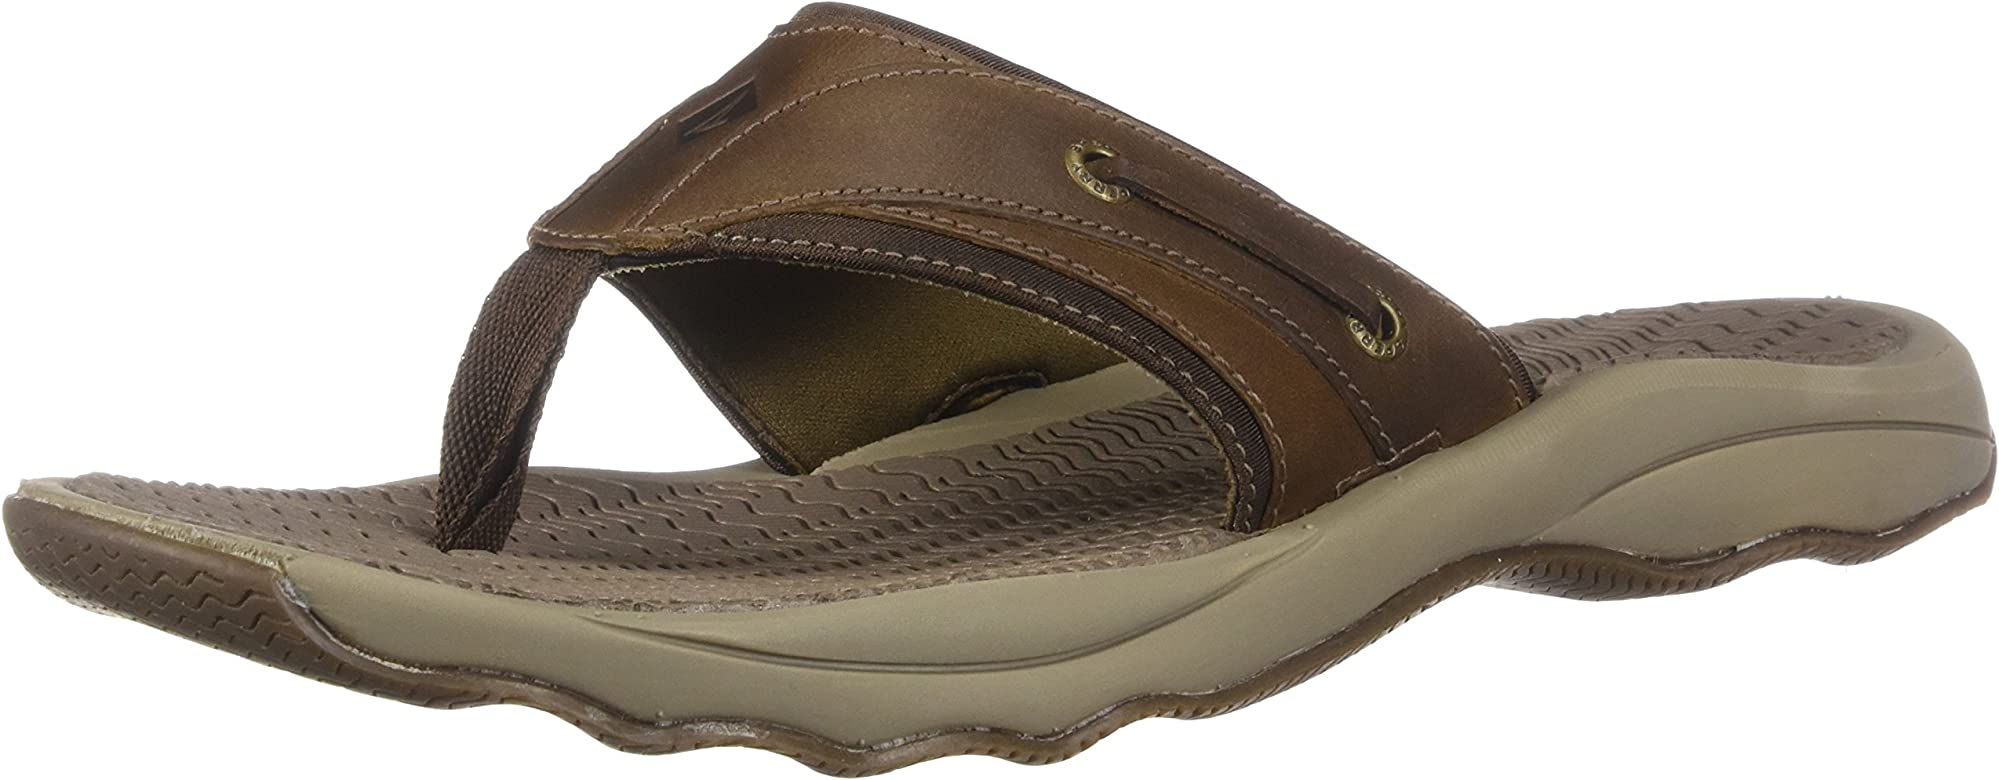 Sperry Mens Outer Banks Thong Sandals